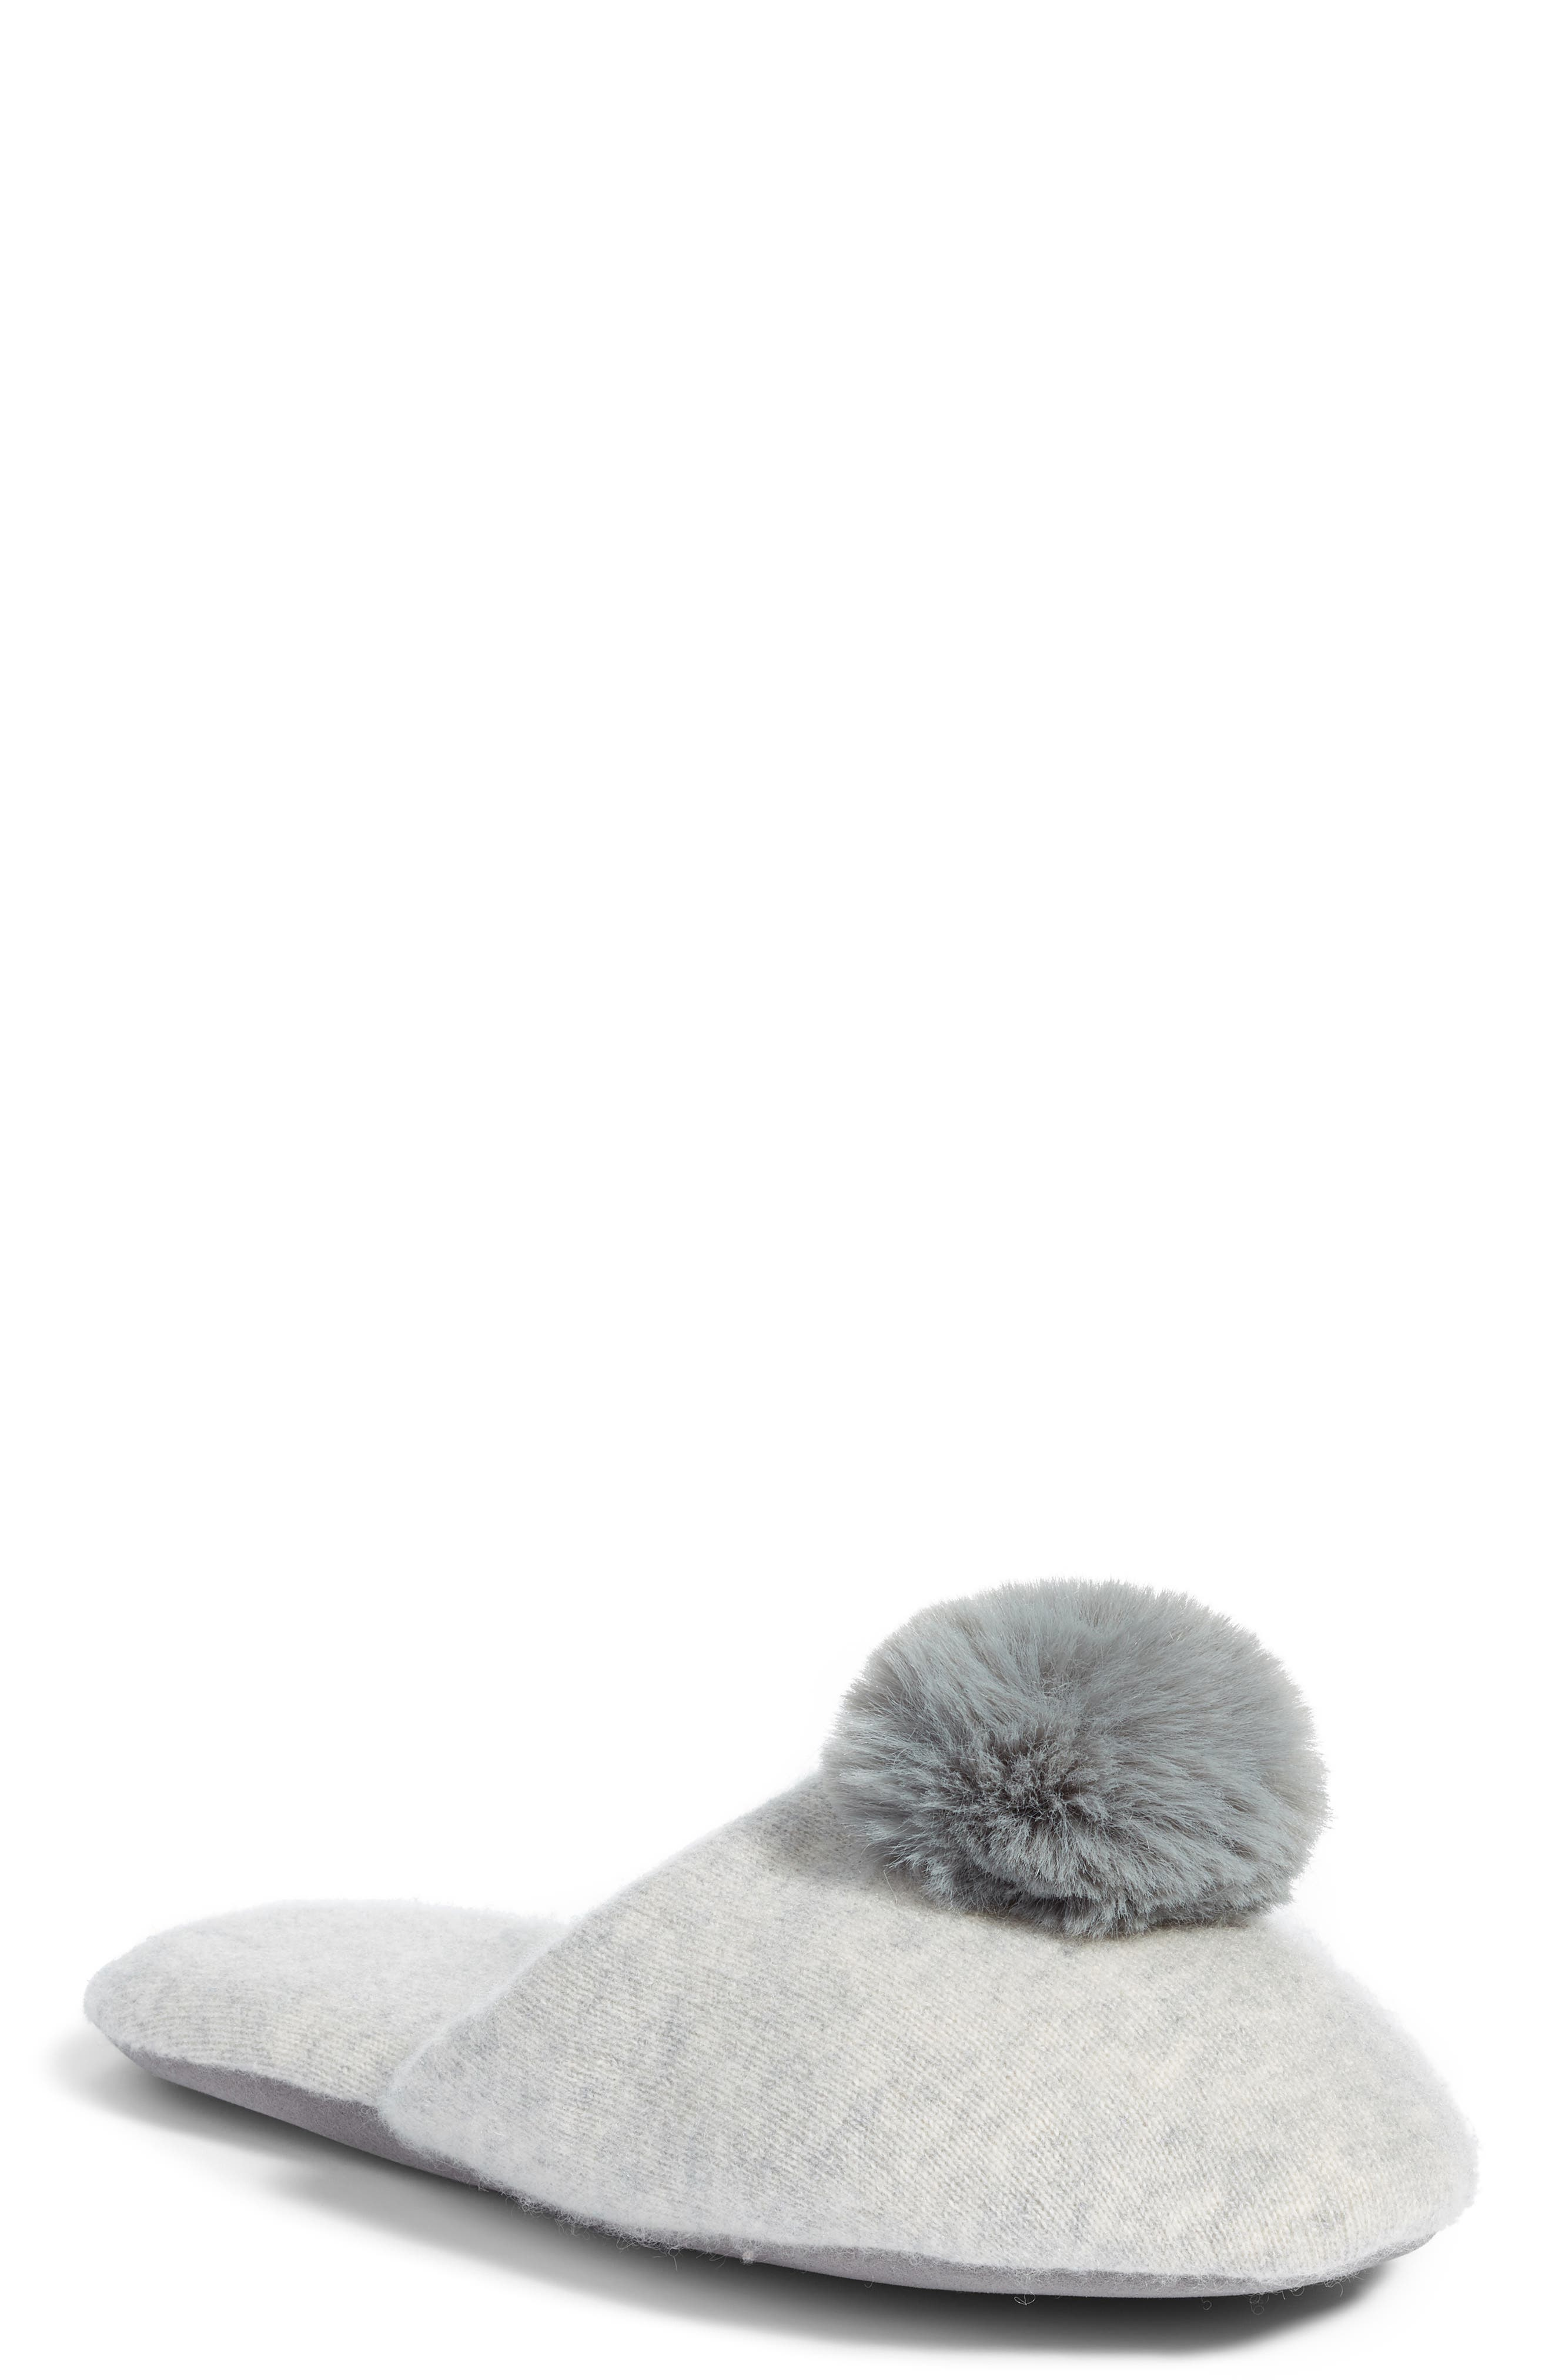 NORDSTROM Wool & Cashmere Slippers with Faux Fur Pompom, Main, color, GREY HEATHER